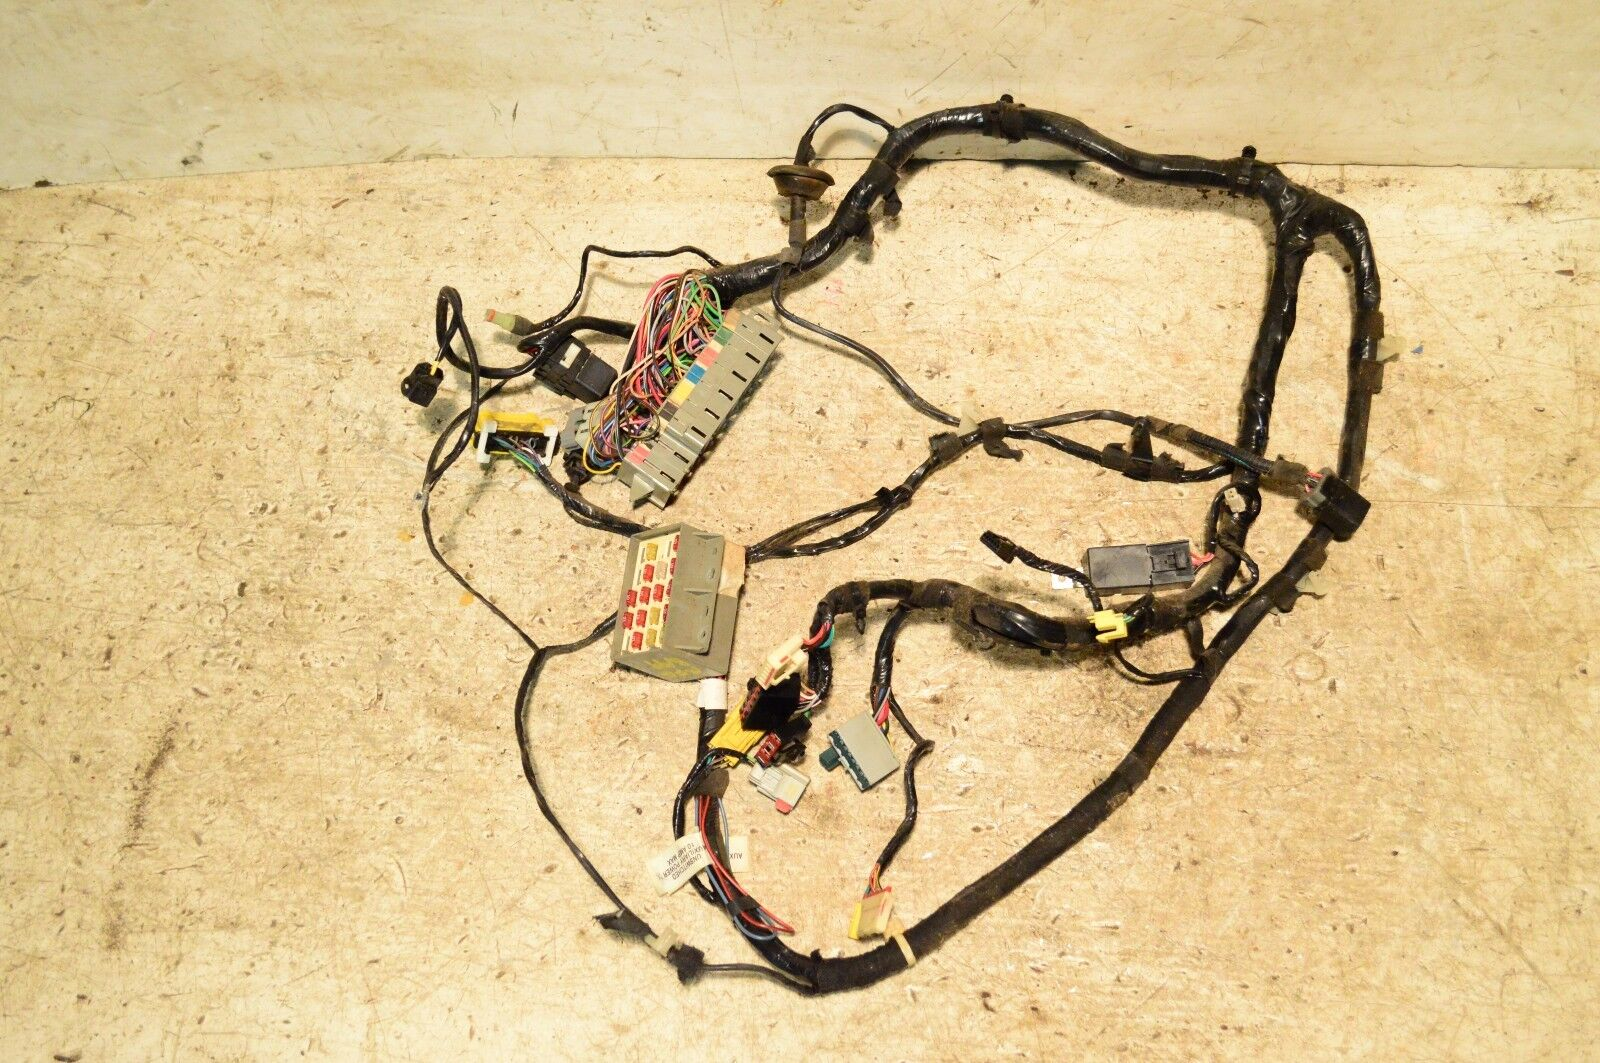 Fuse Box 2000 Tj Jeep Wrangler Wiring Cross Body Harness Paj Oem Under Dash Soft Top You Re Almost Done